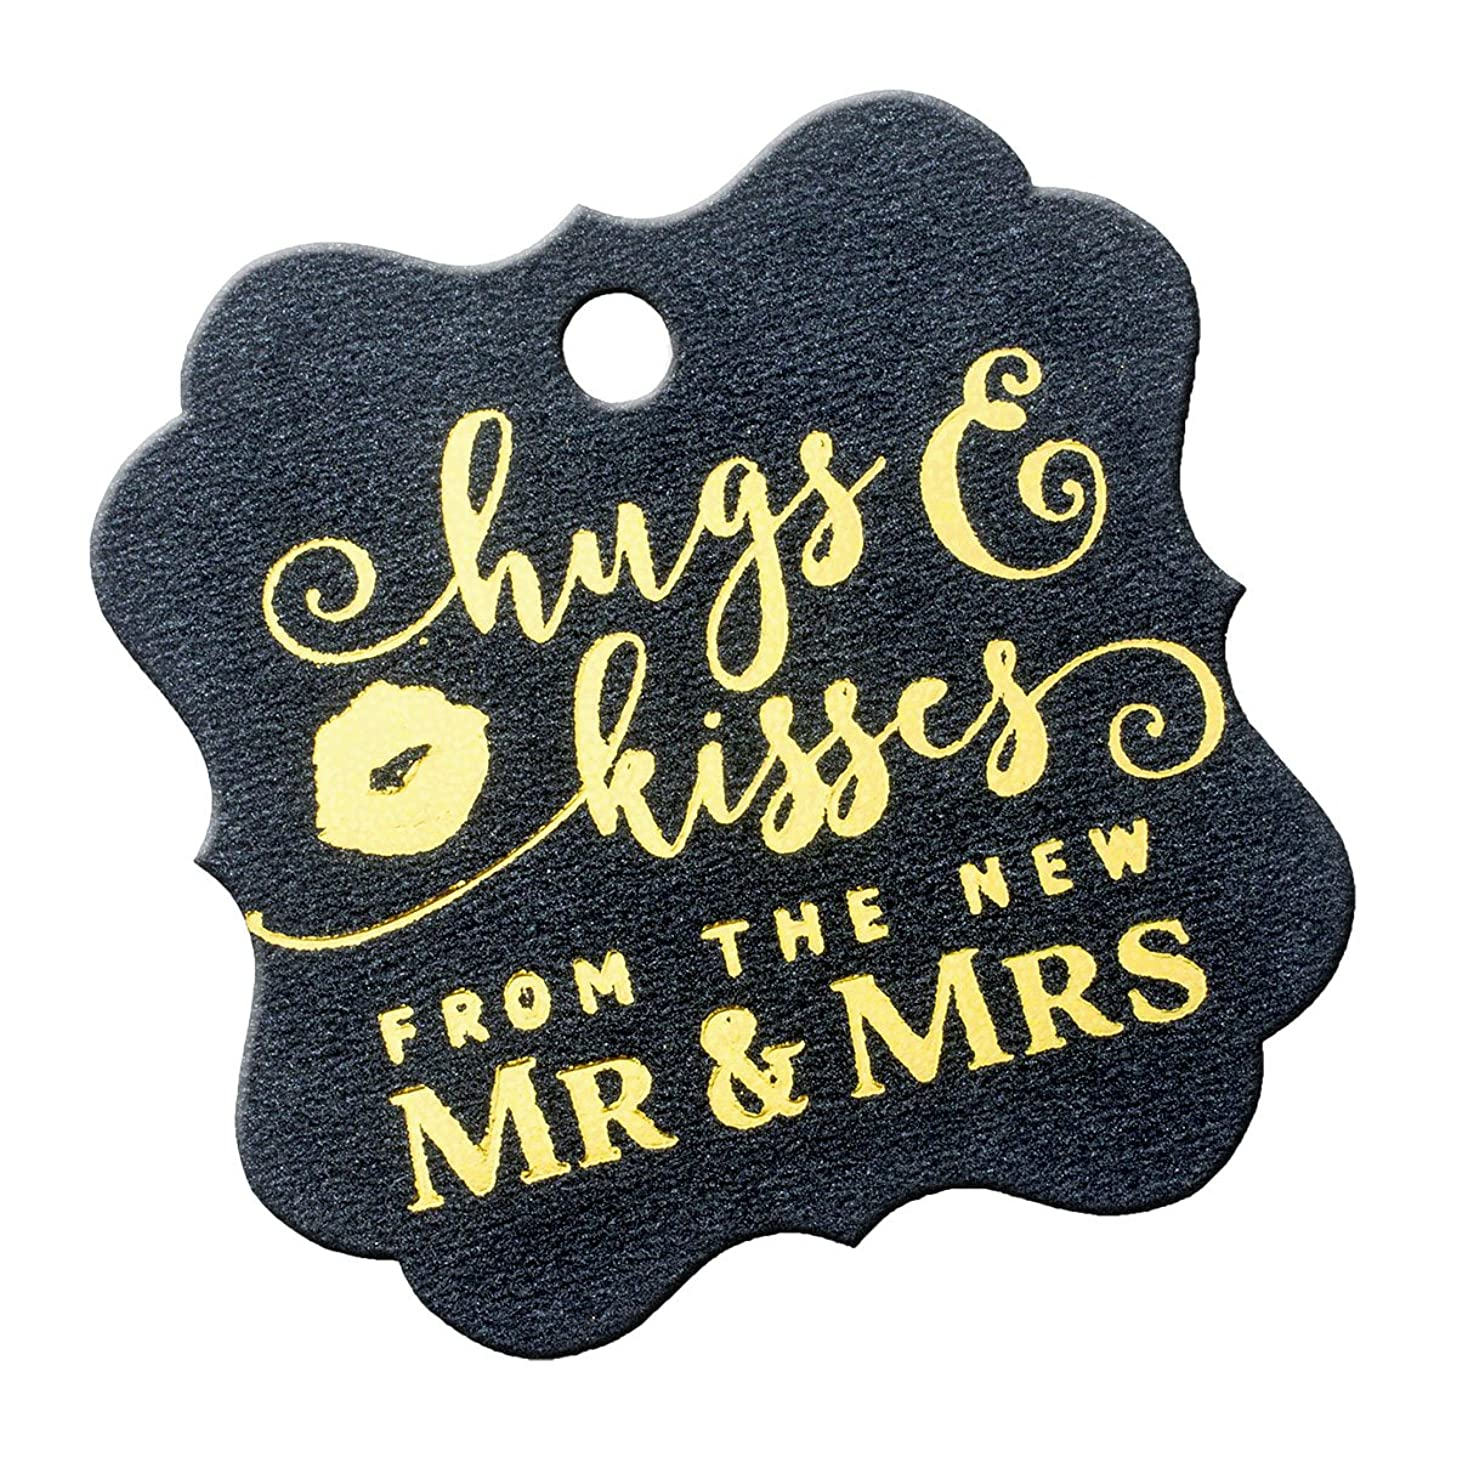 Summer-Ray 50pcs Gold Foil Hot Stamping Shimmered Black Elegant Square Hugs & Kisses from the New Mr & Mrs Wedding Favor Gift Tags